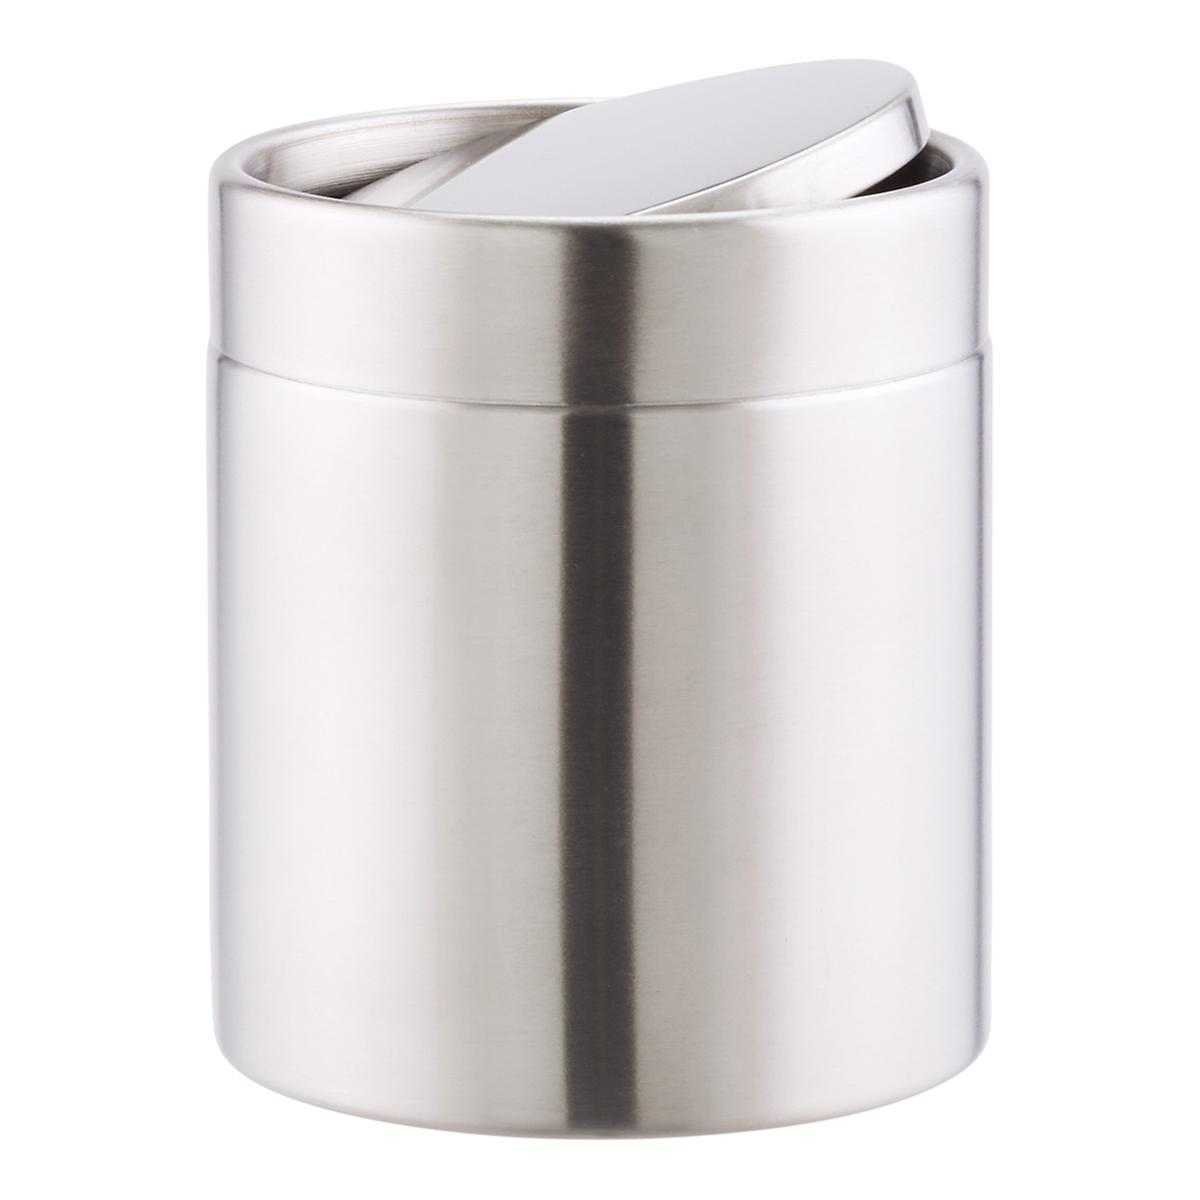 Stainless Steel Swing-Lid Countertop Trash Can